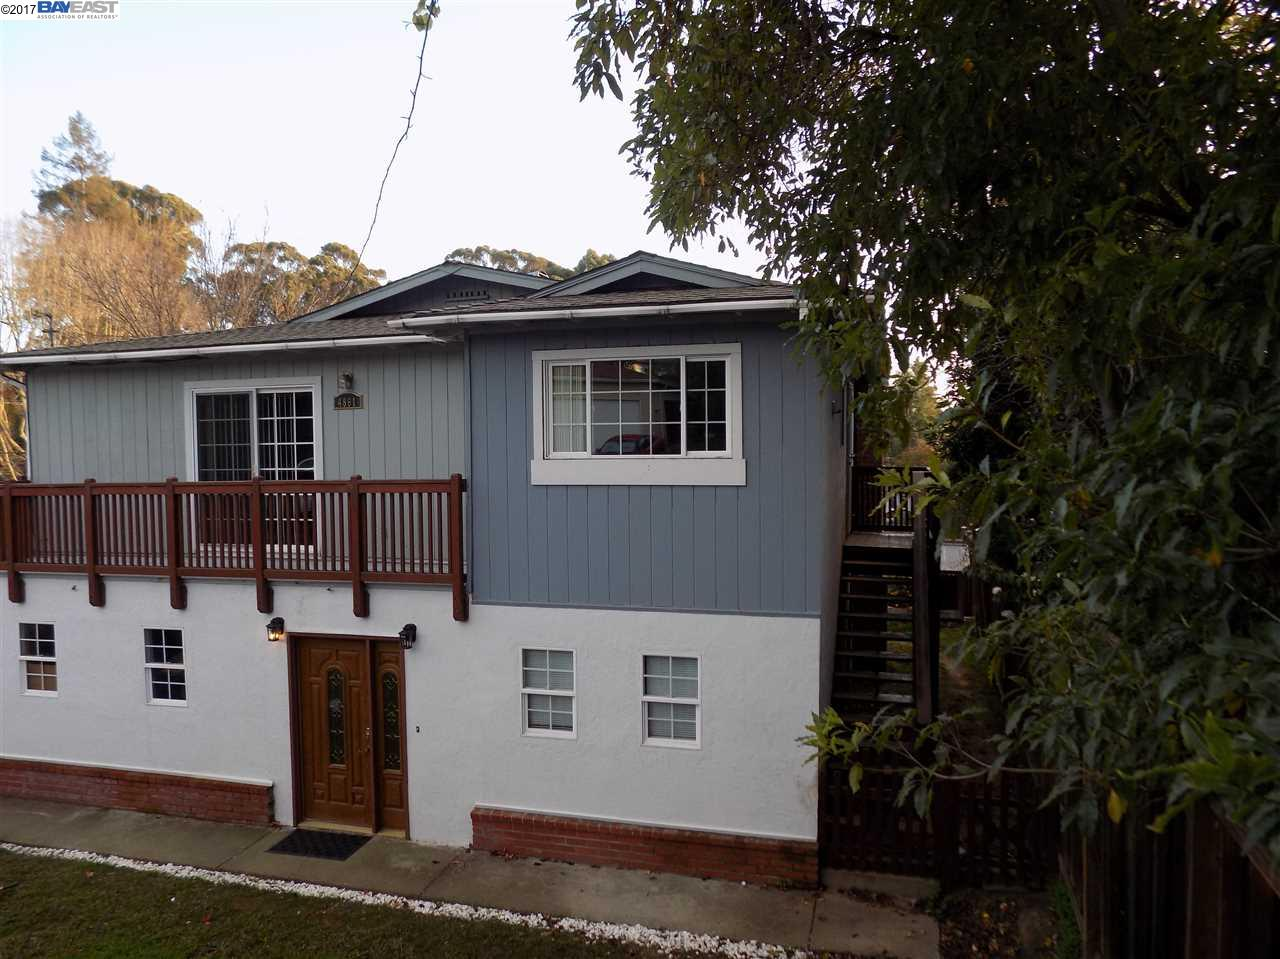 Single Family Home for Sale at 4861 Seven Hills Road Castro Valley, California 94546 United States